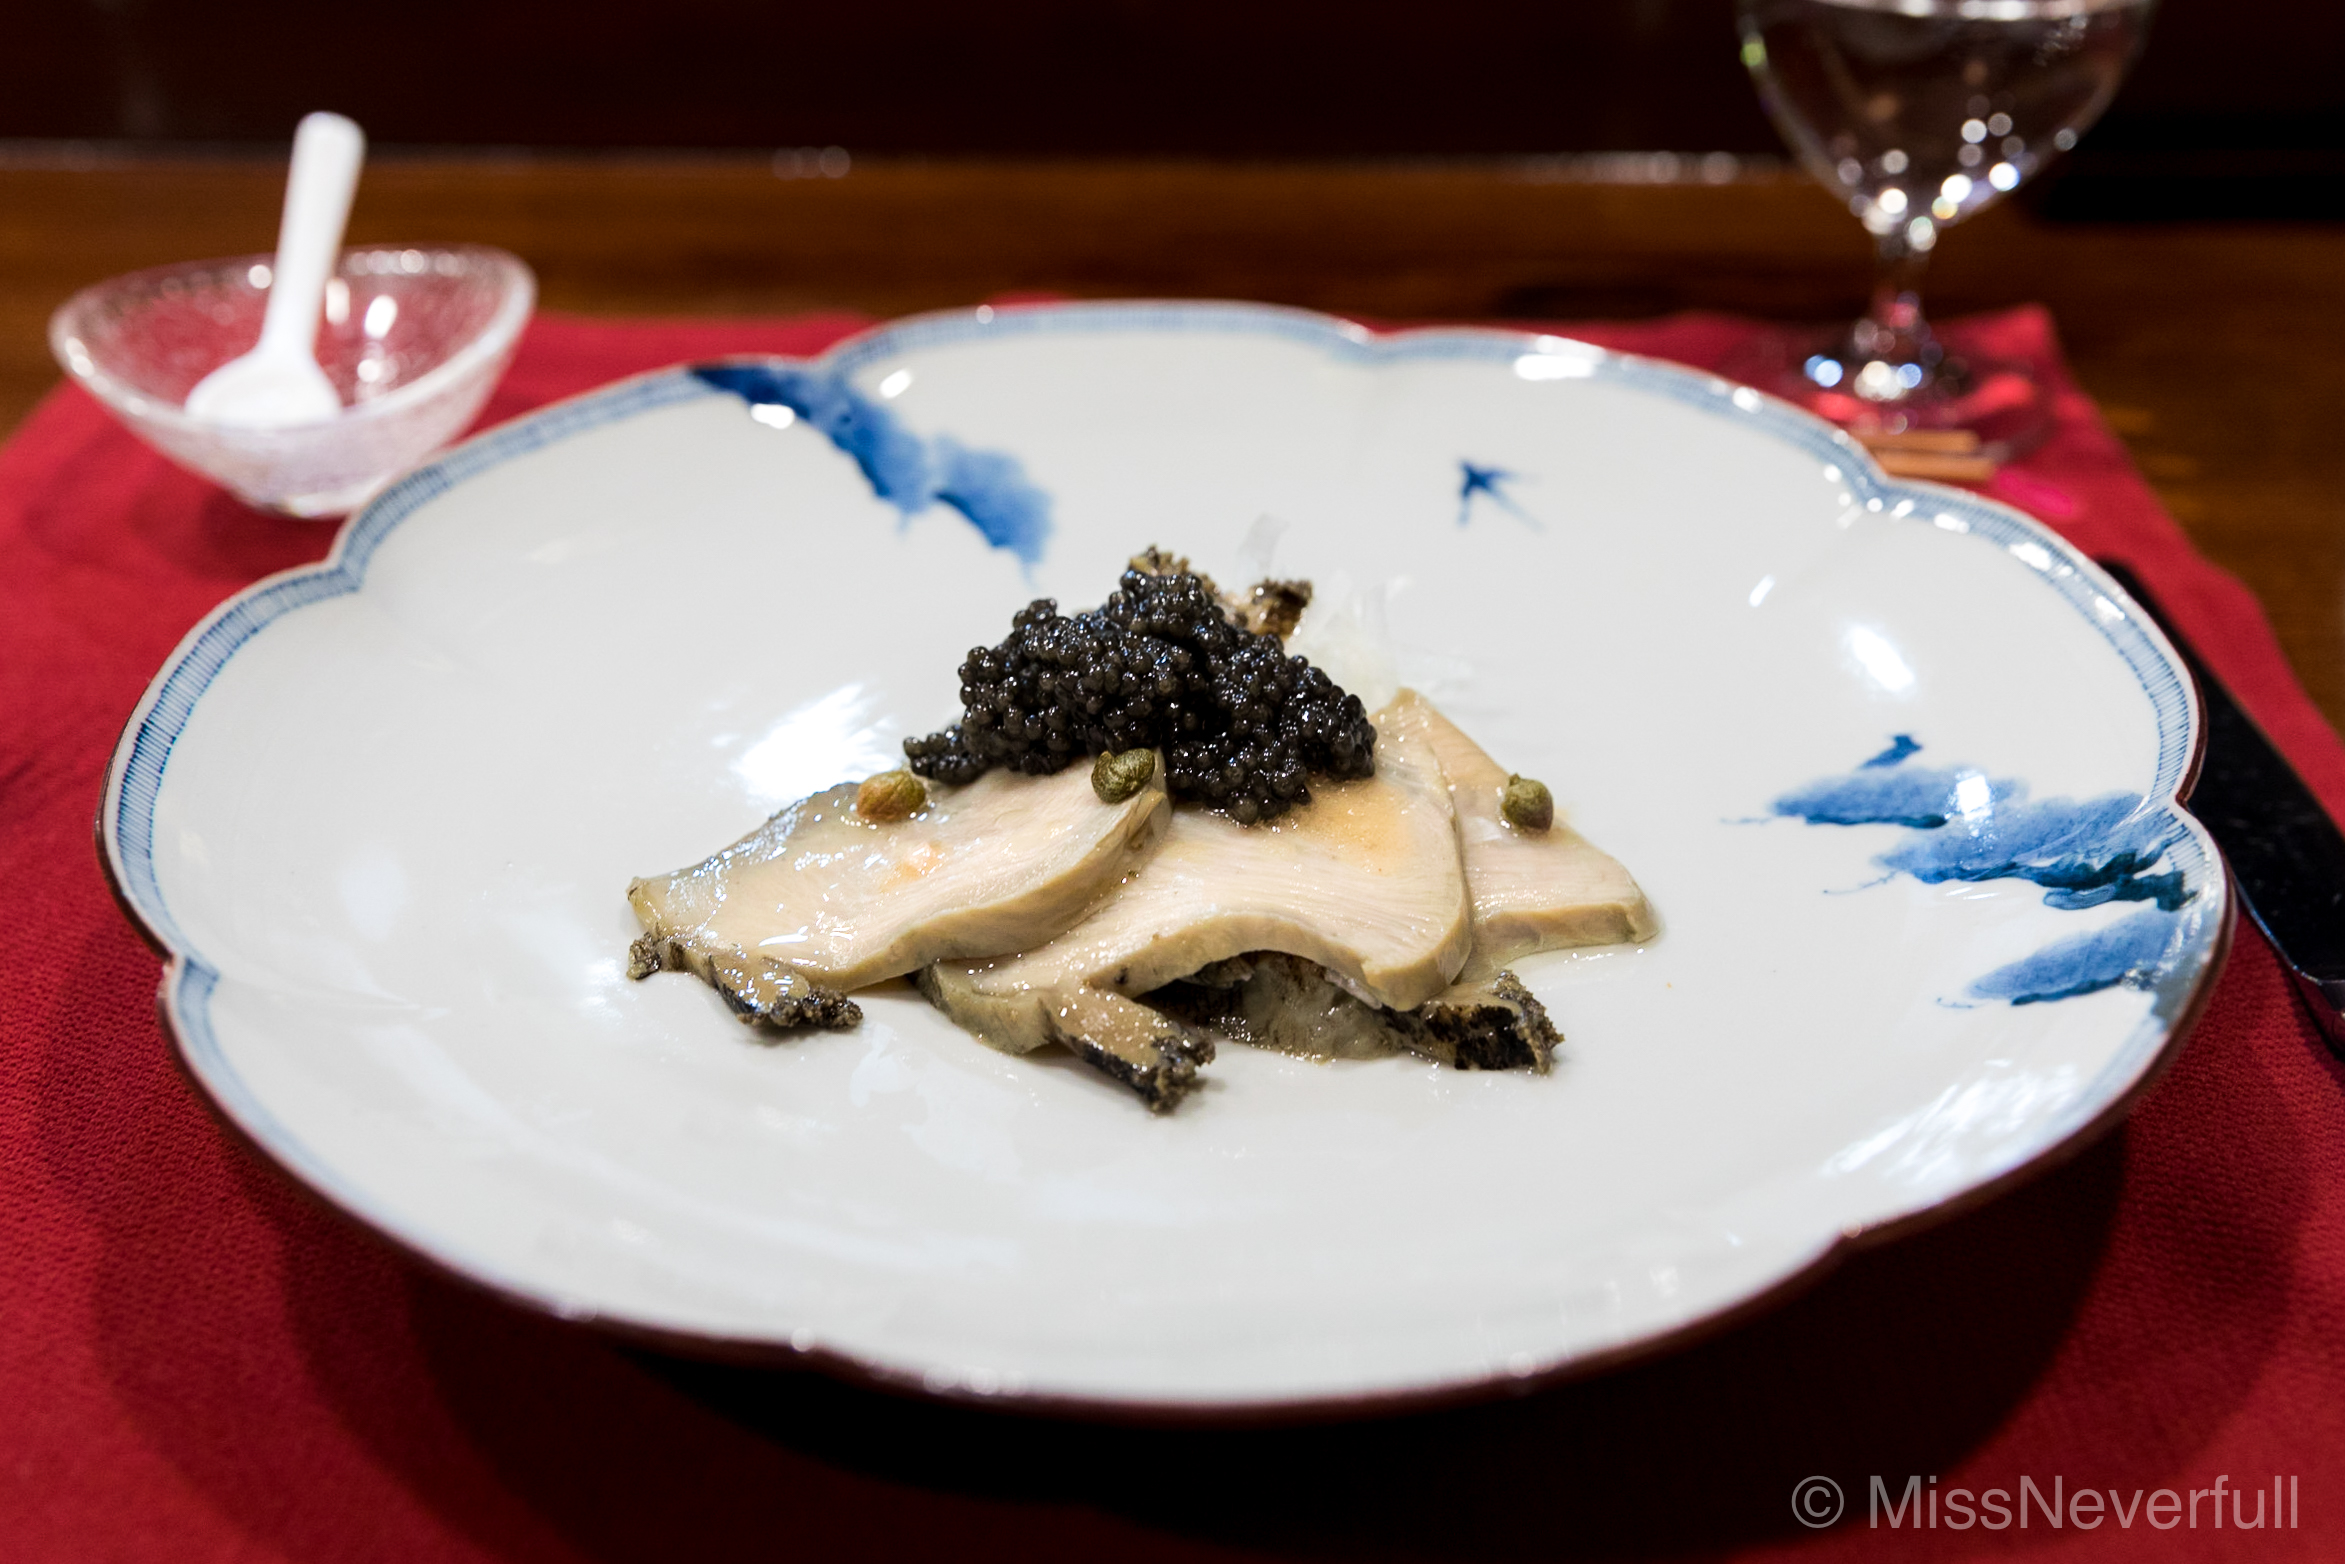 1. Abalone with Beluga Caviar